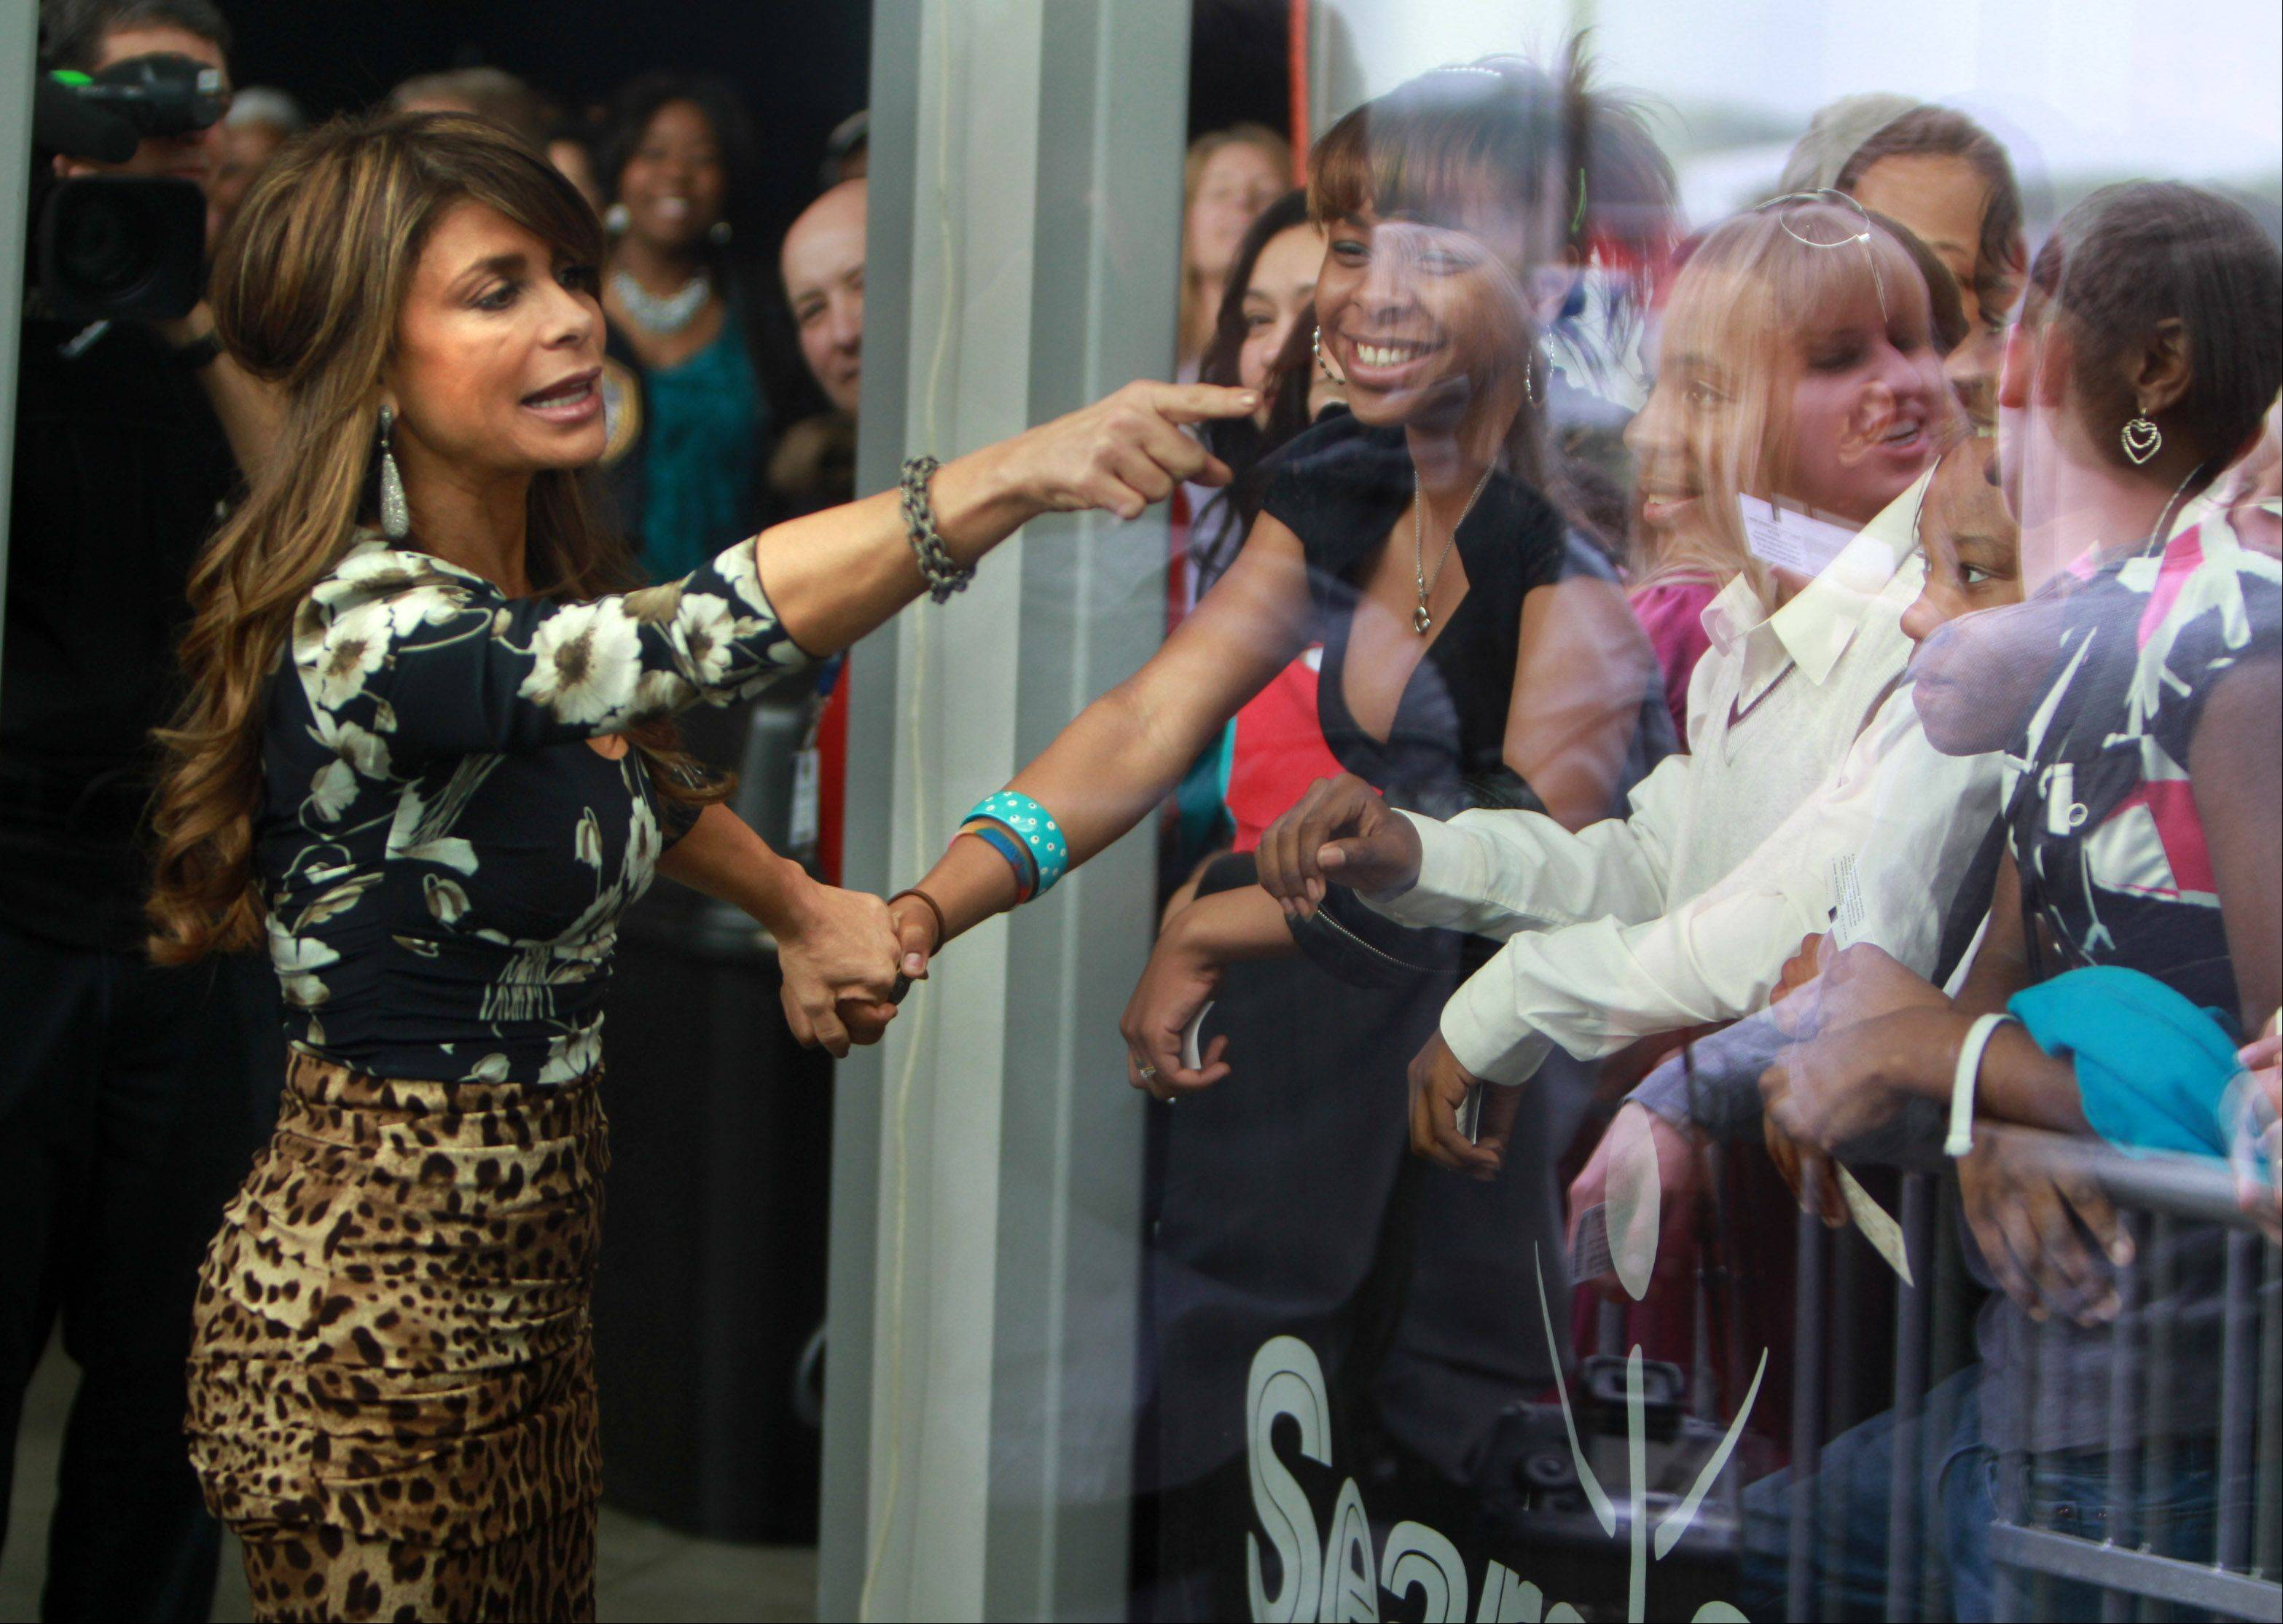 Paula Abdul is photographed through glass as she greets fans inside Sears Centre in Hoffman Estates on Thursday, May 19th.